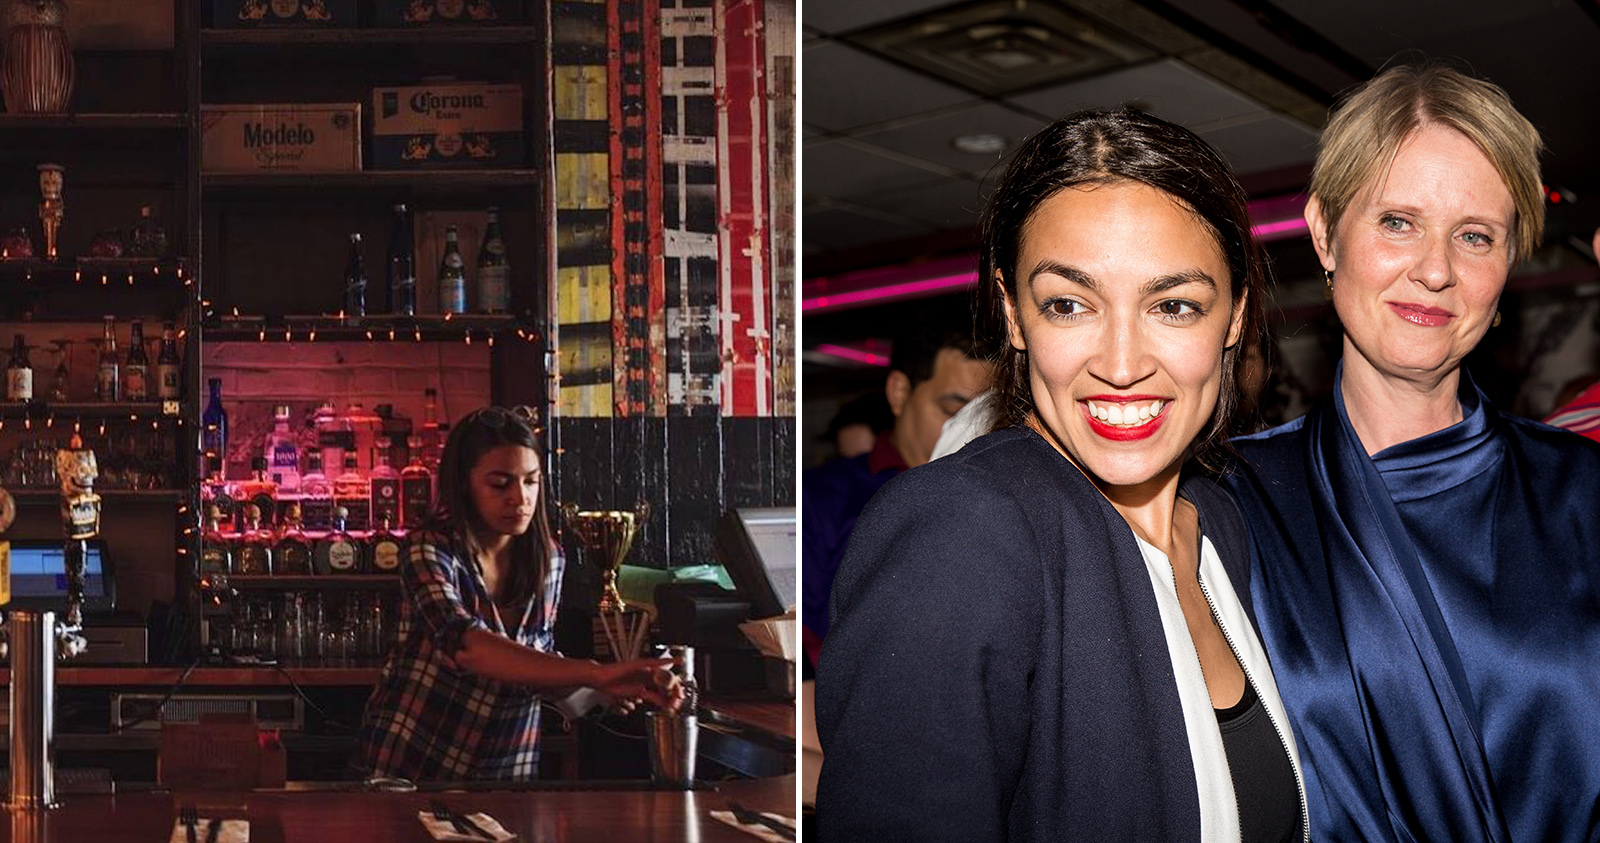 969be816 Alexandria Ocasio-Cortez Was Tending Bar and Waiting Tables Less than a  Year Ago